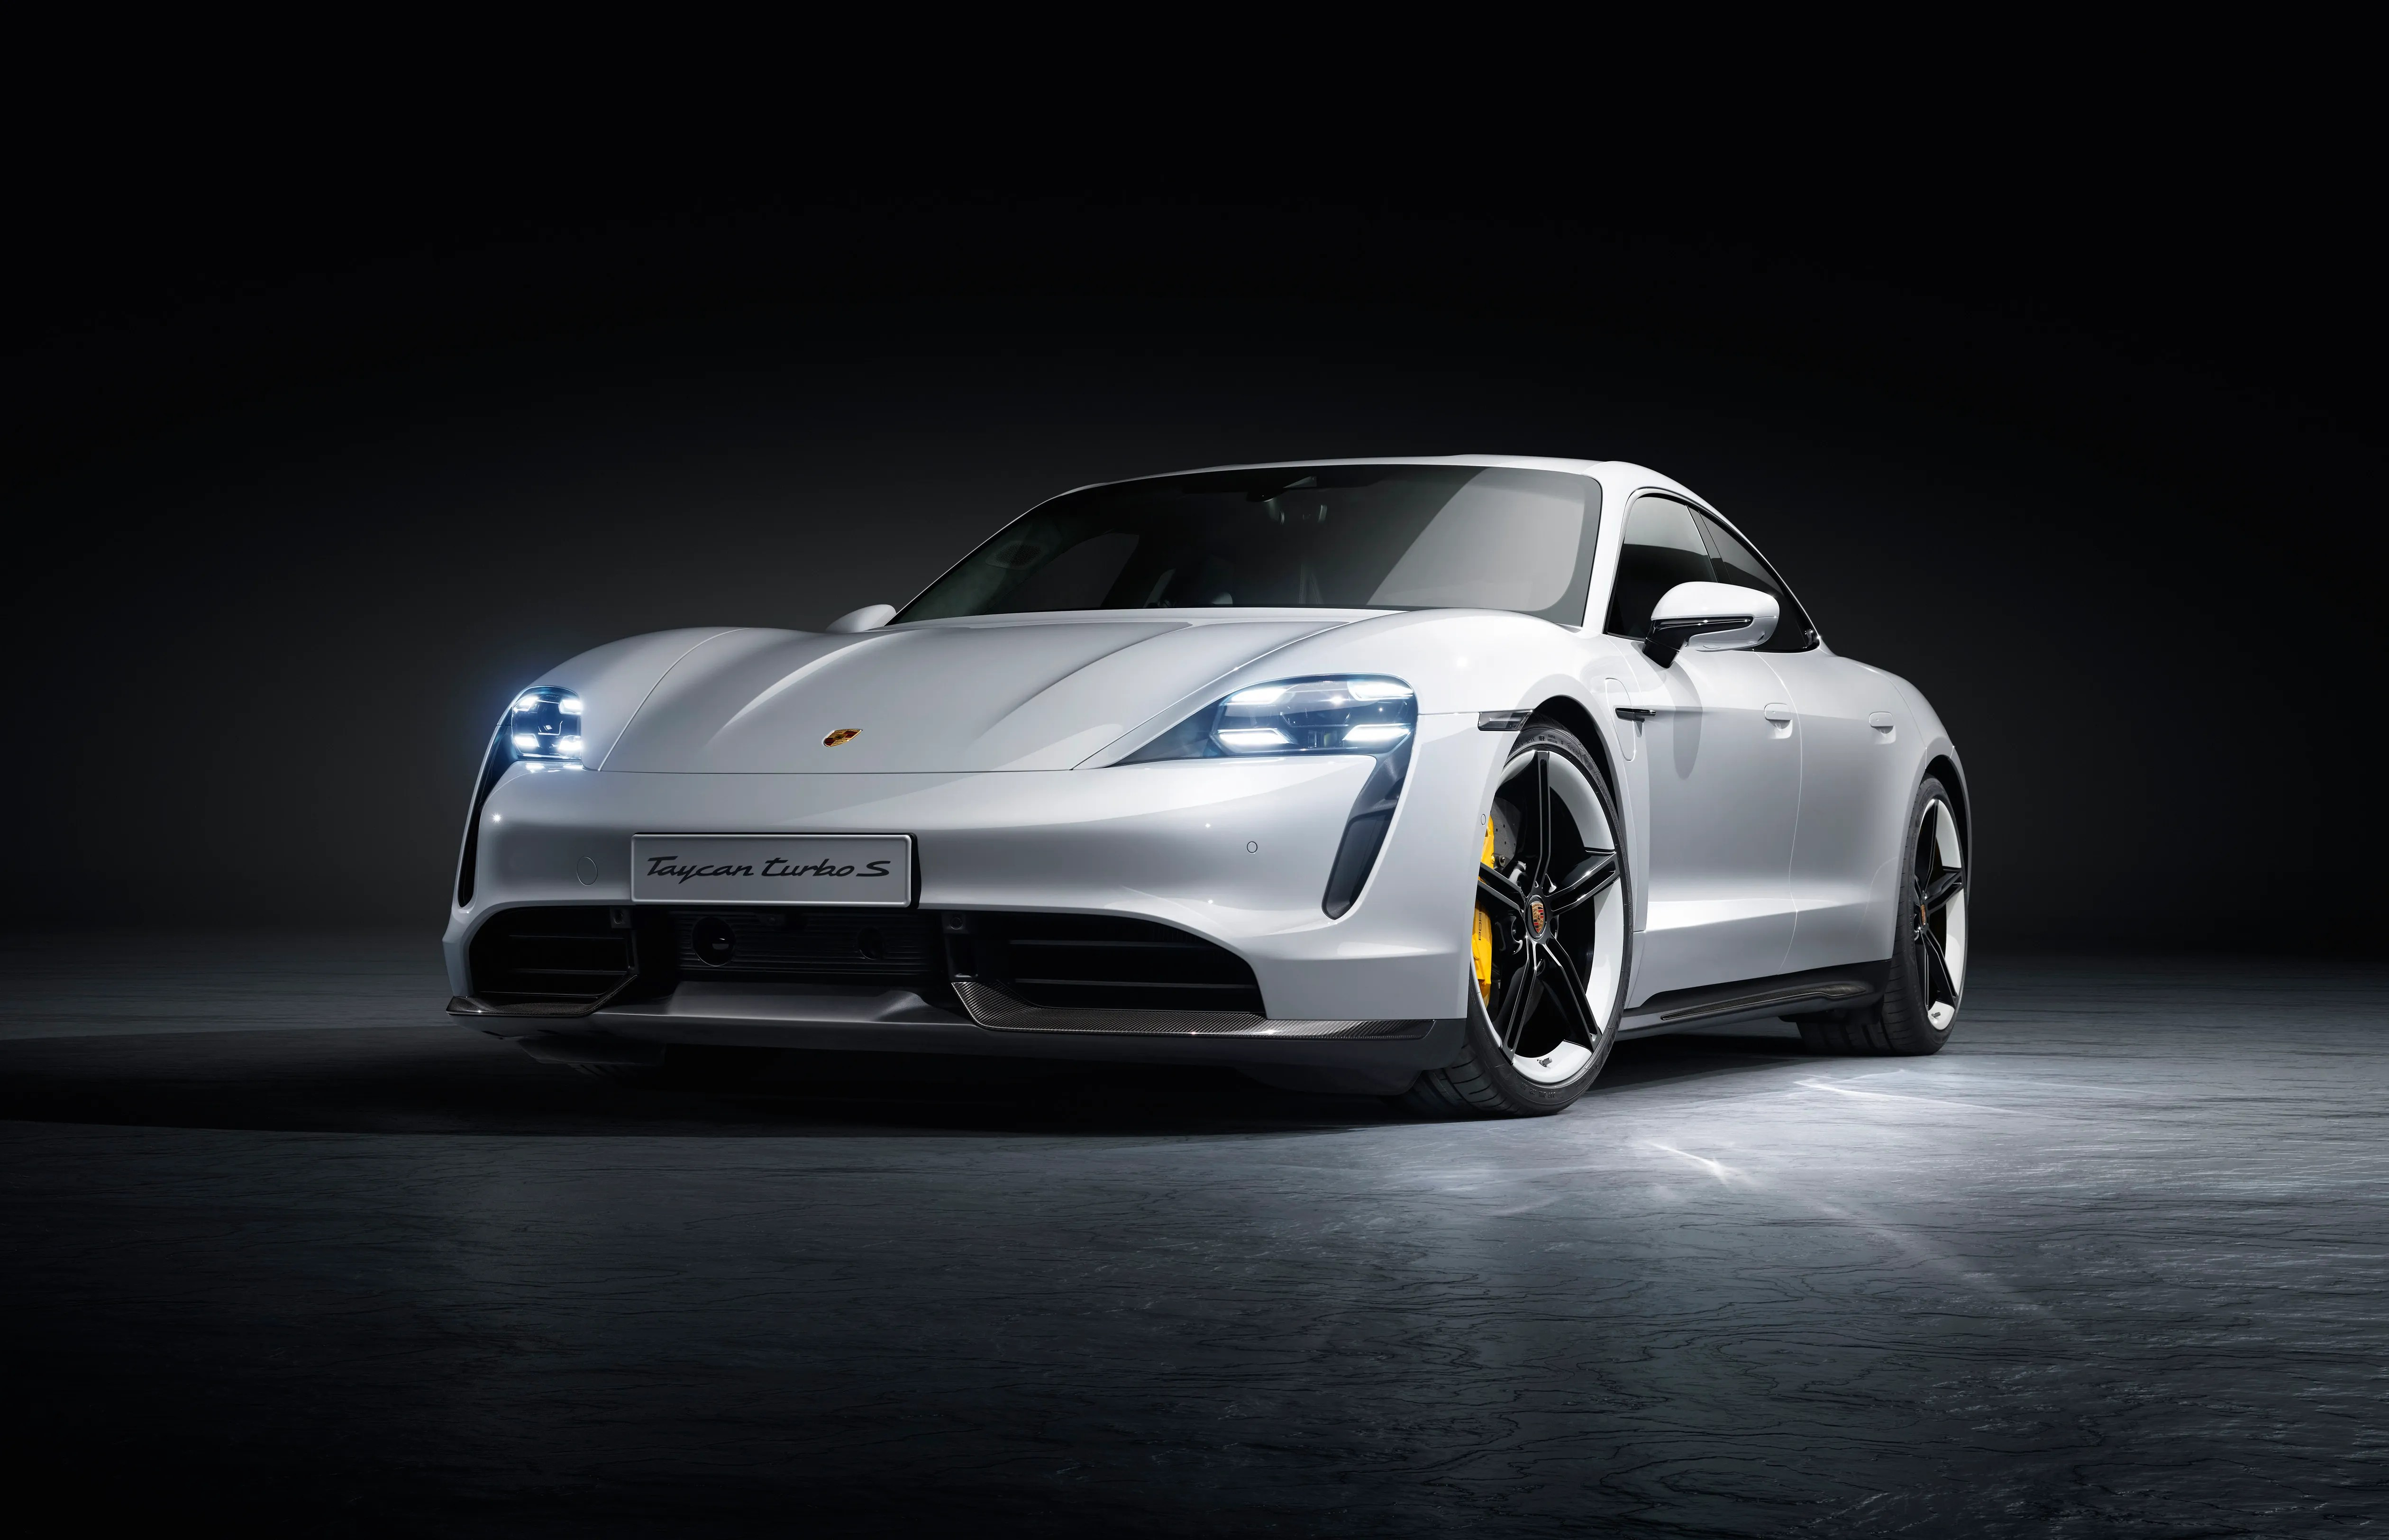 The Porsche Taycan is one of 16 vehicles for the 2020 model year that carry a starting price of $100,000 or more, according to Edmunds.